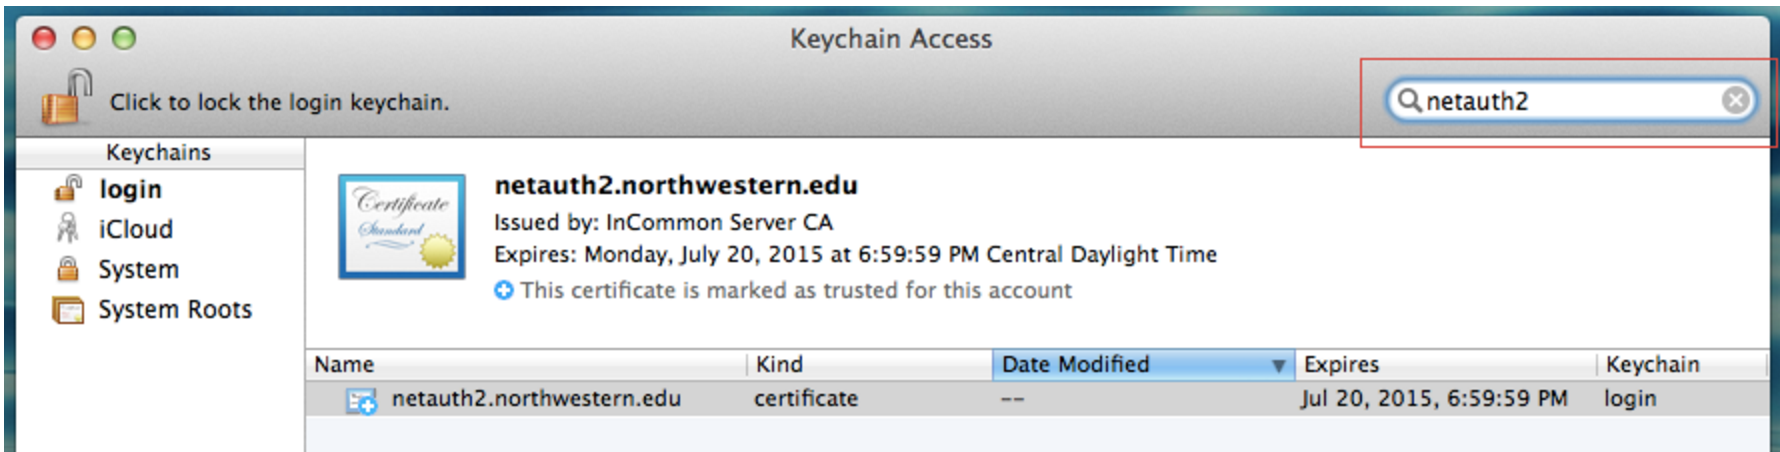 Image of the certificate on the keychain screen.